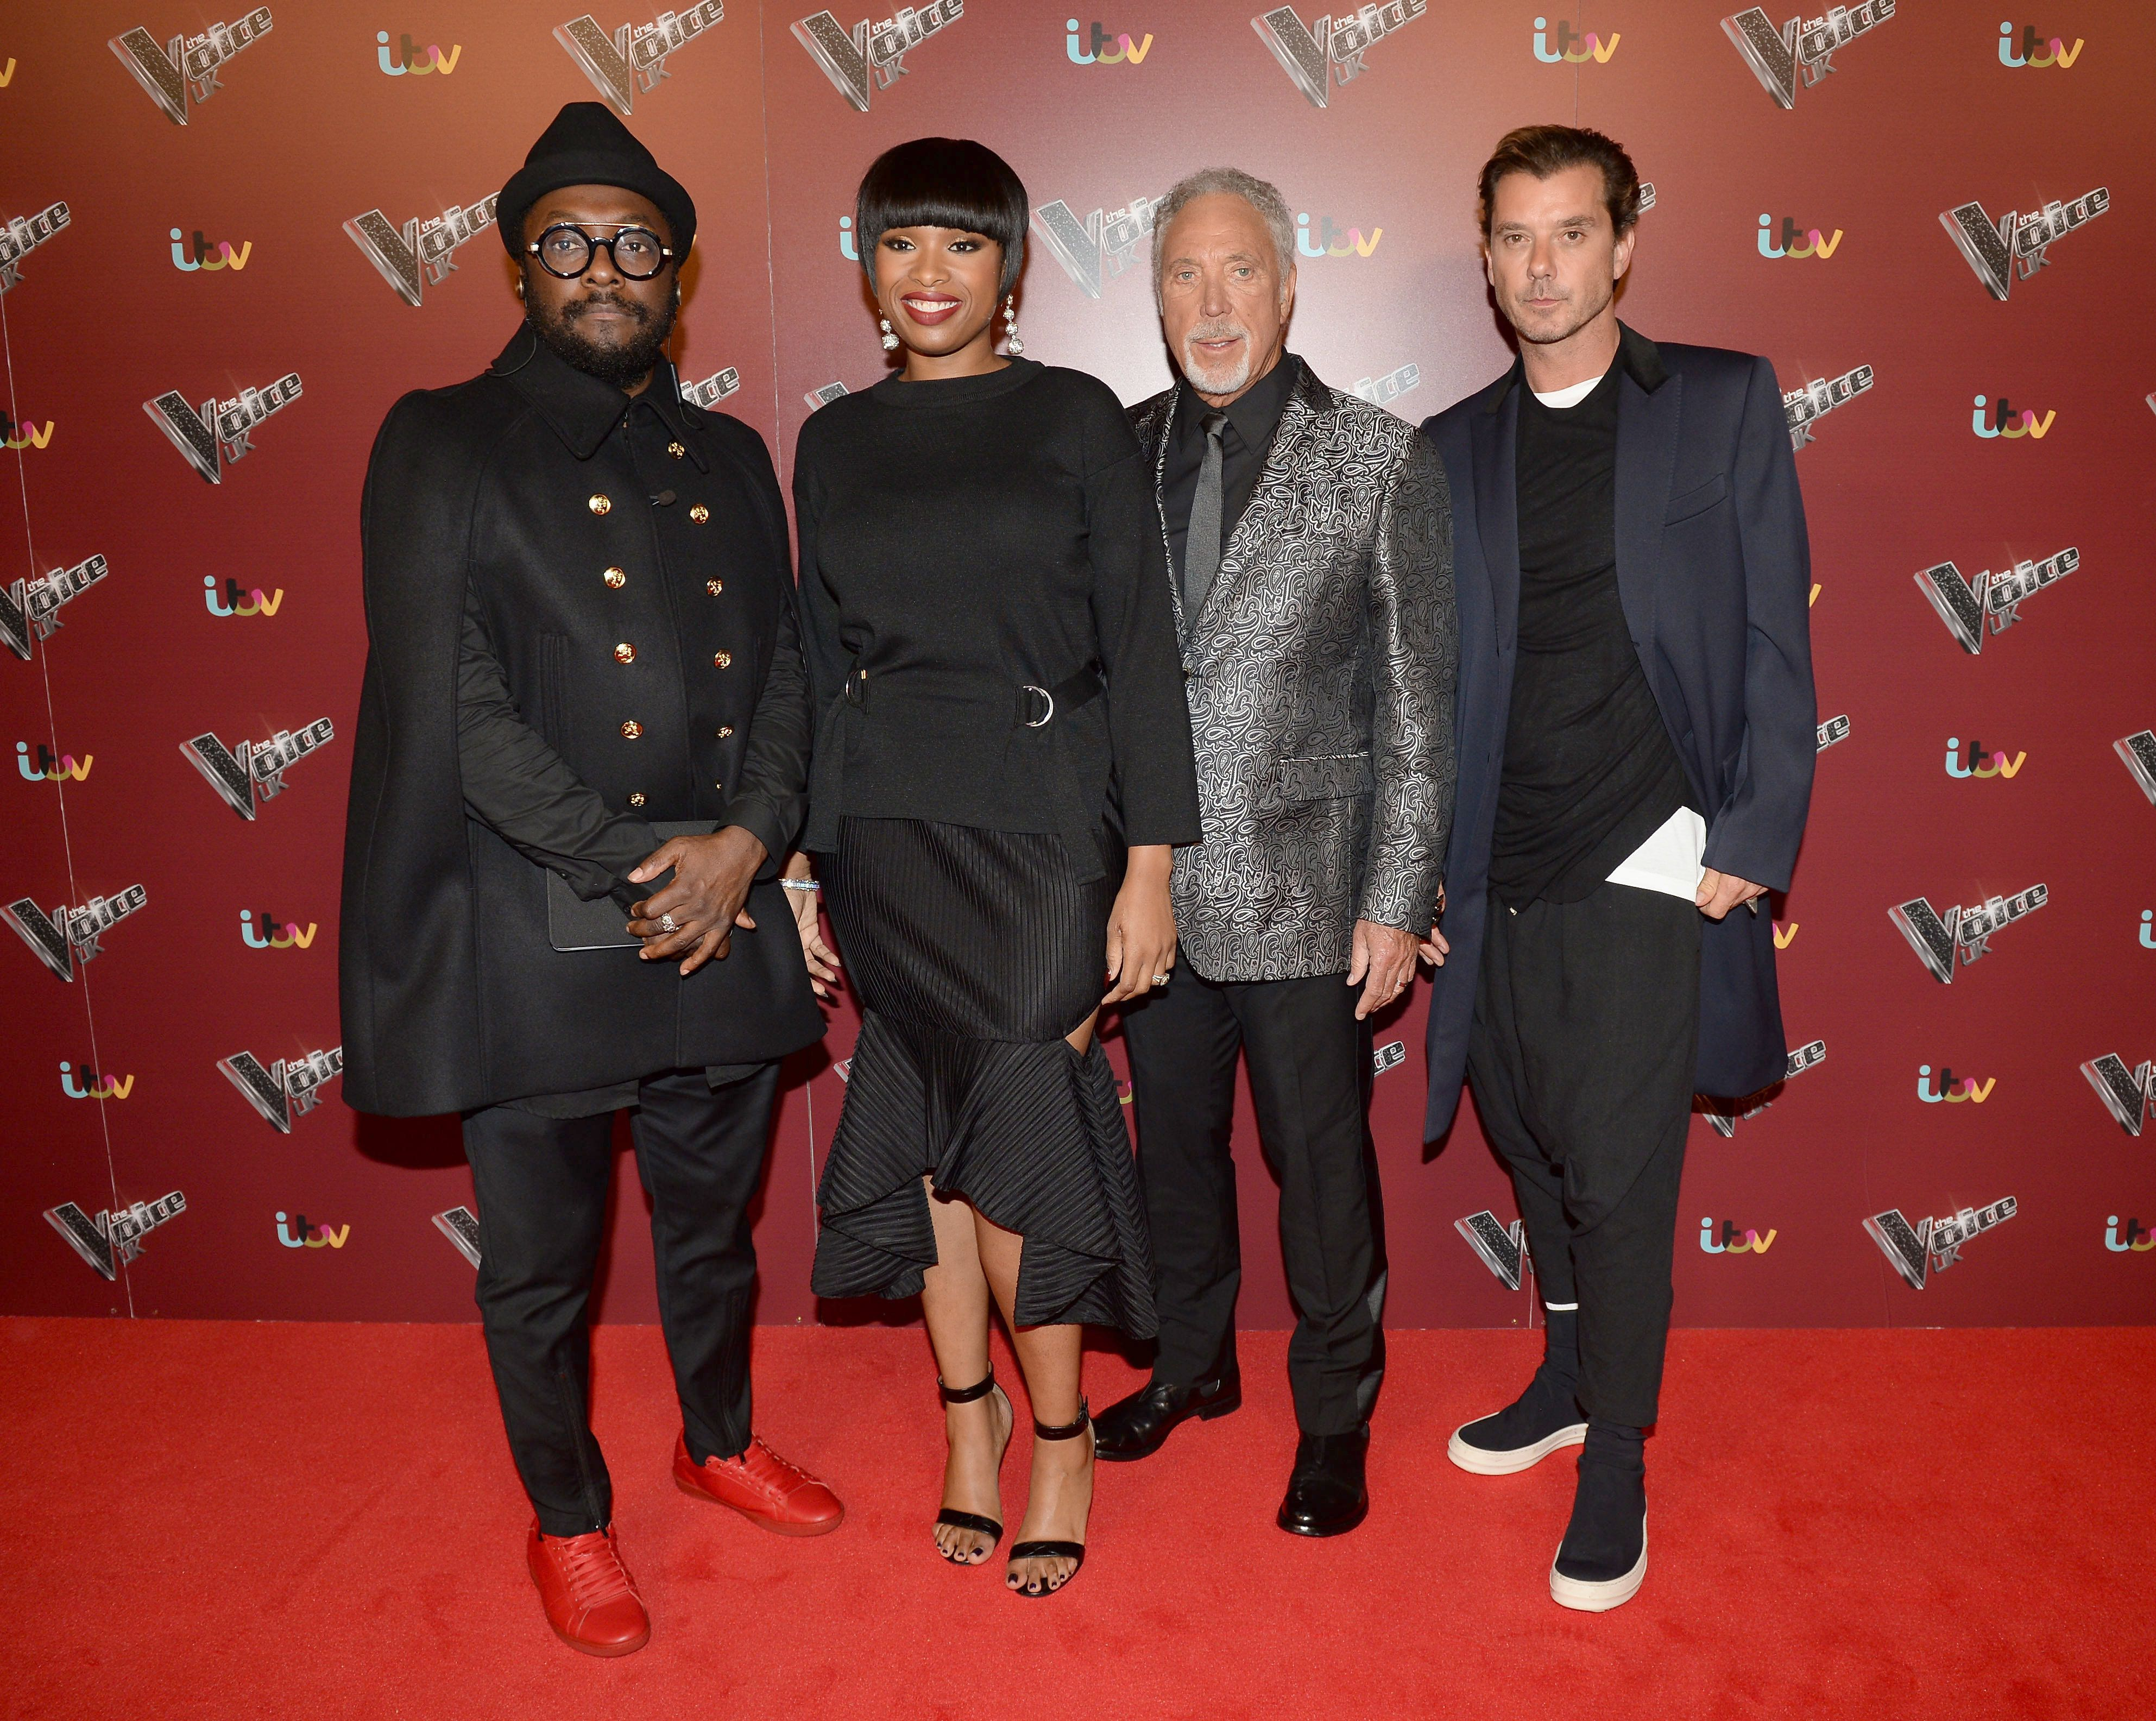 The New Judges Of 'The Voice' Look Positively Thrilled Ahead Of